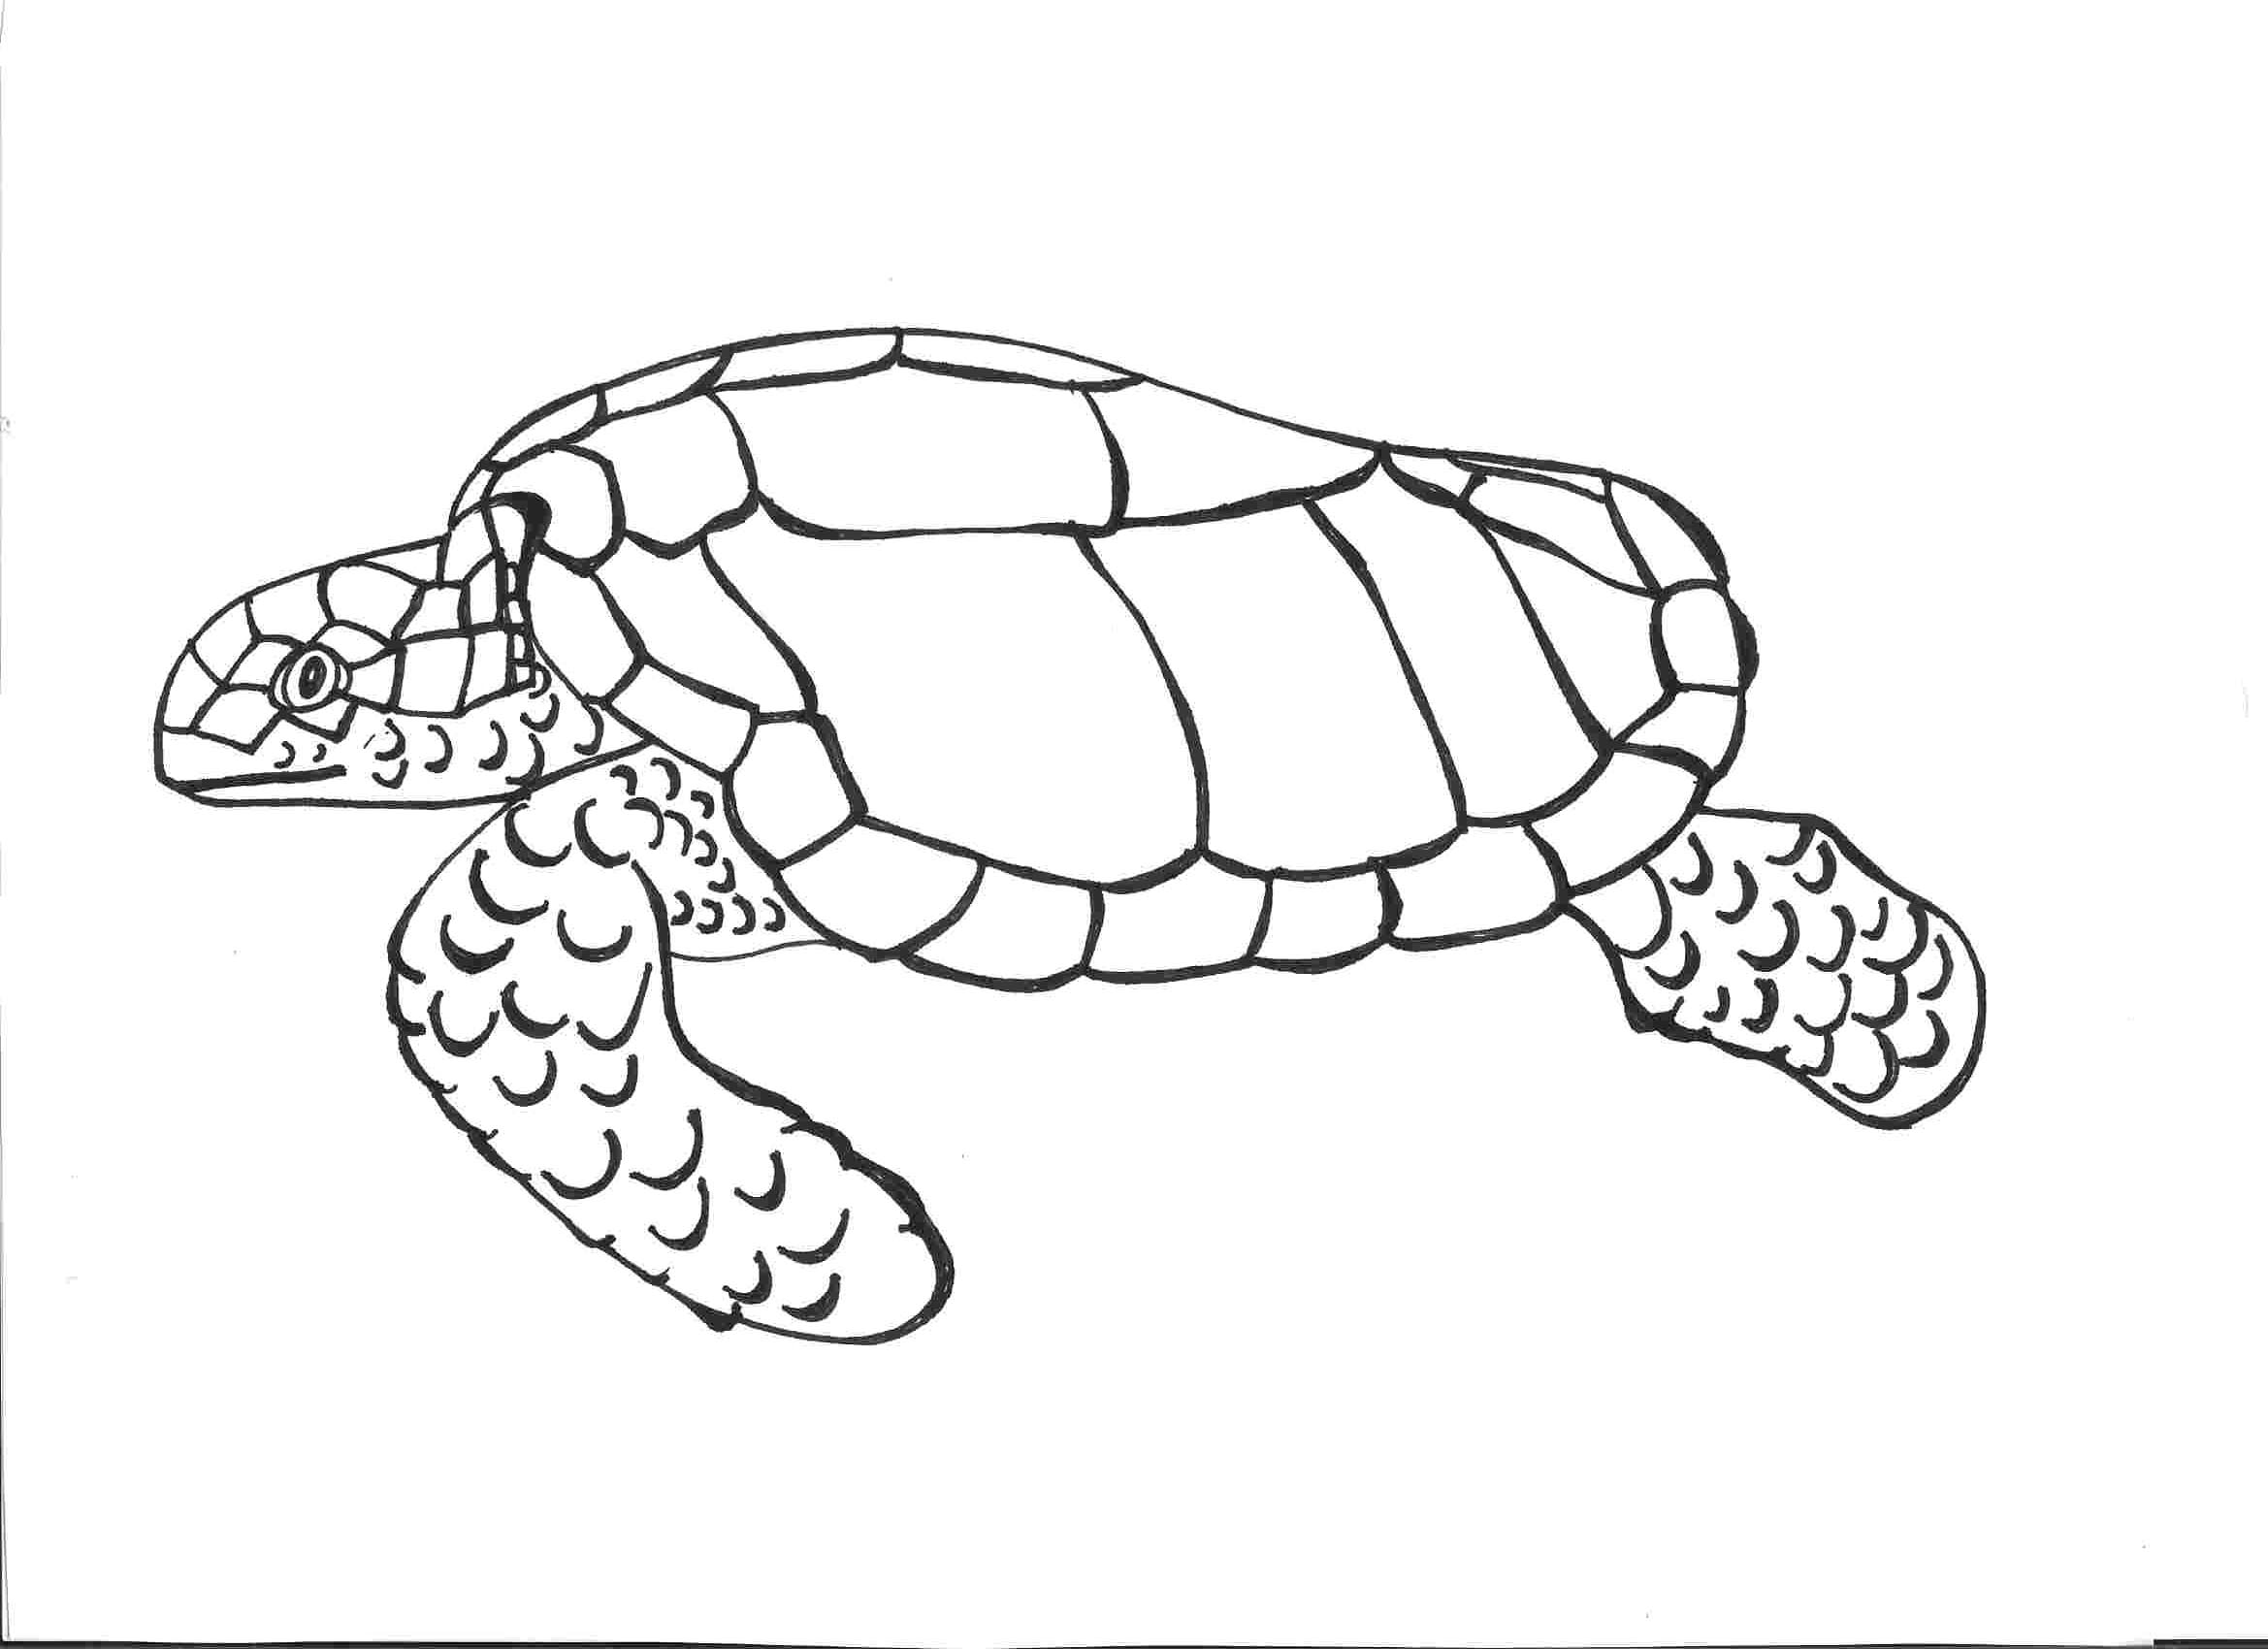 turtle coloring book page coloring pages turtles free printable coloring pages book coloring turtle page